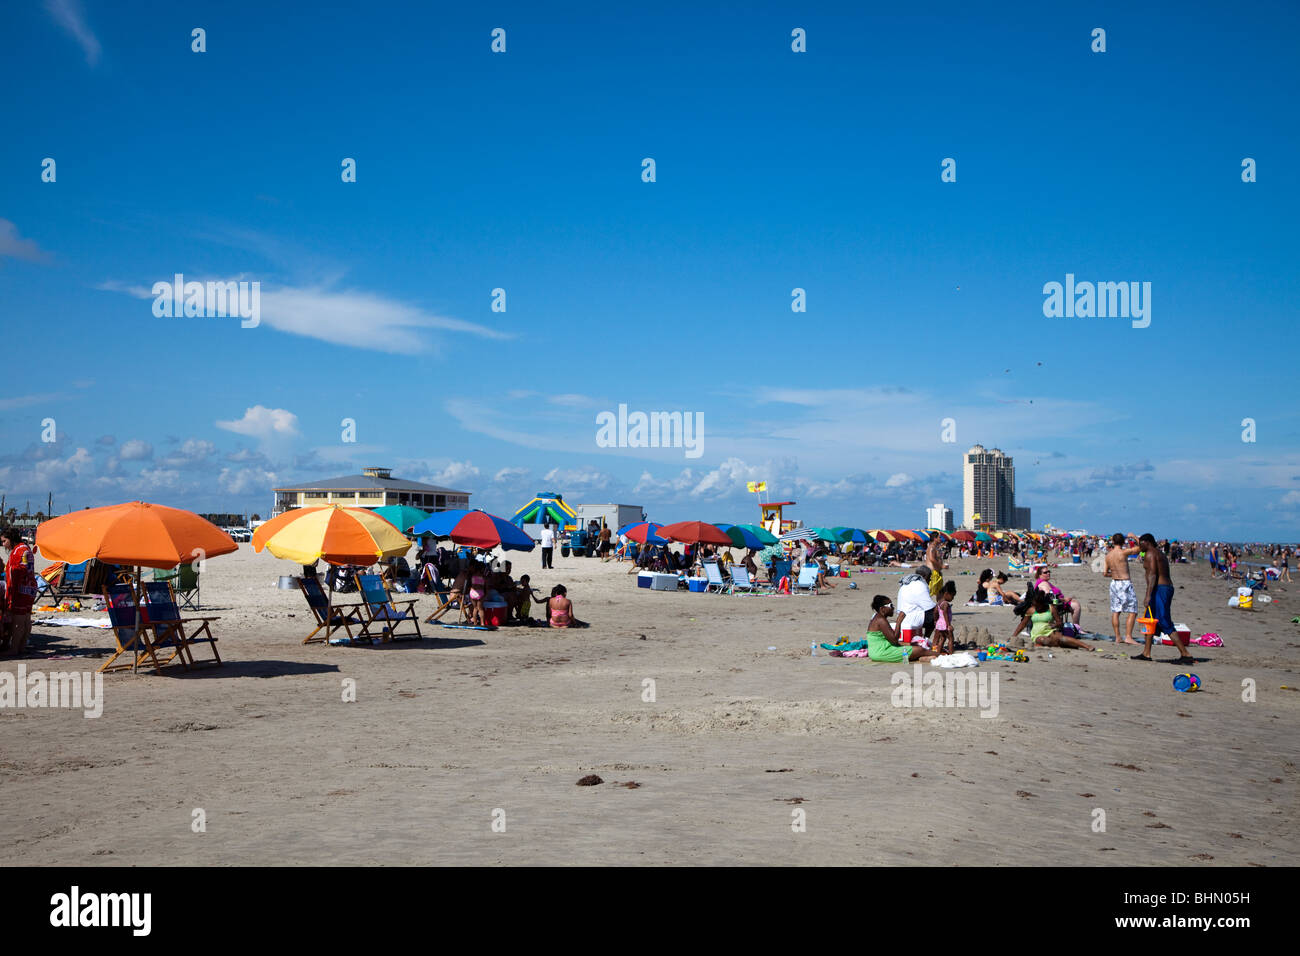 People on Stewart beach with sunshades and deckchairs Galveston Texas USA - Stock Image